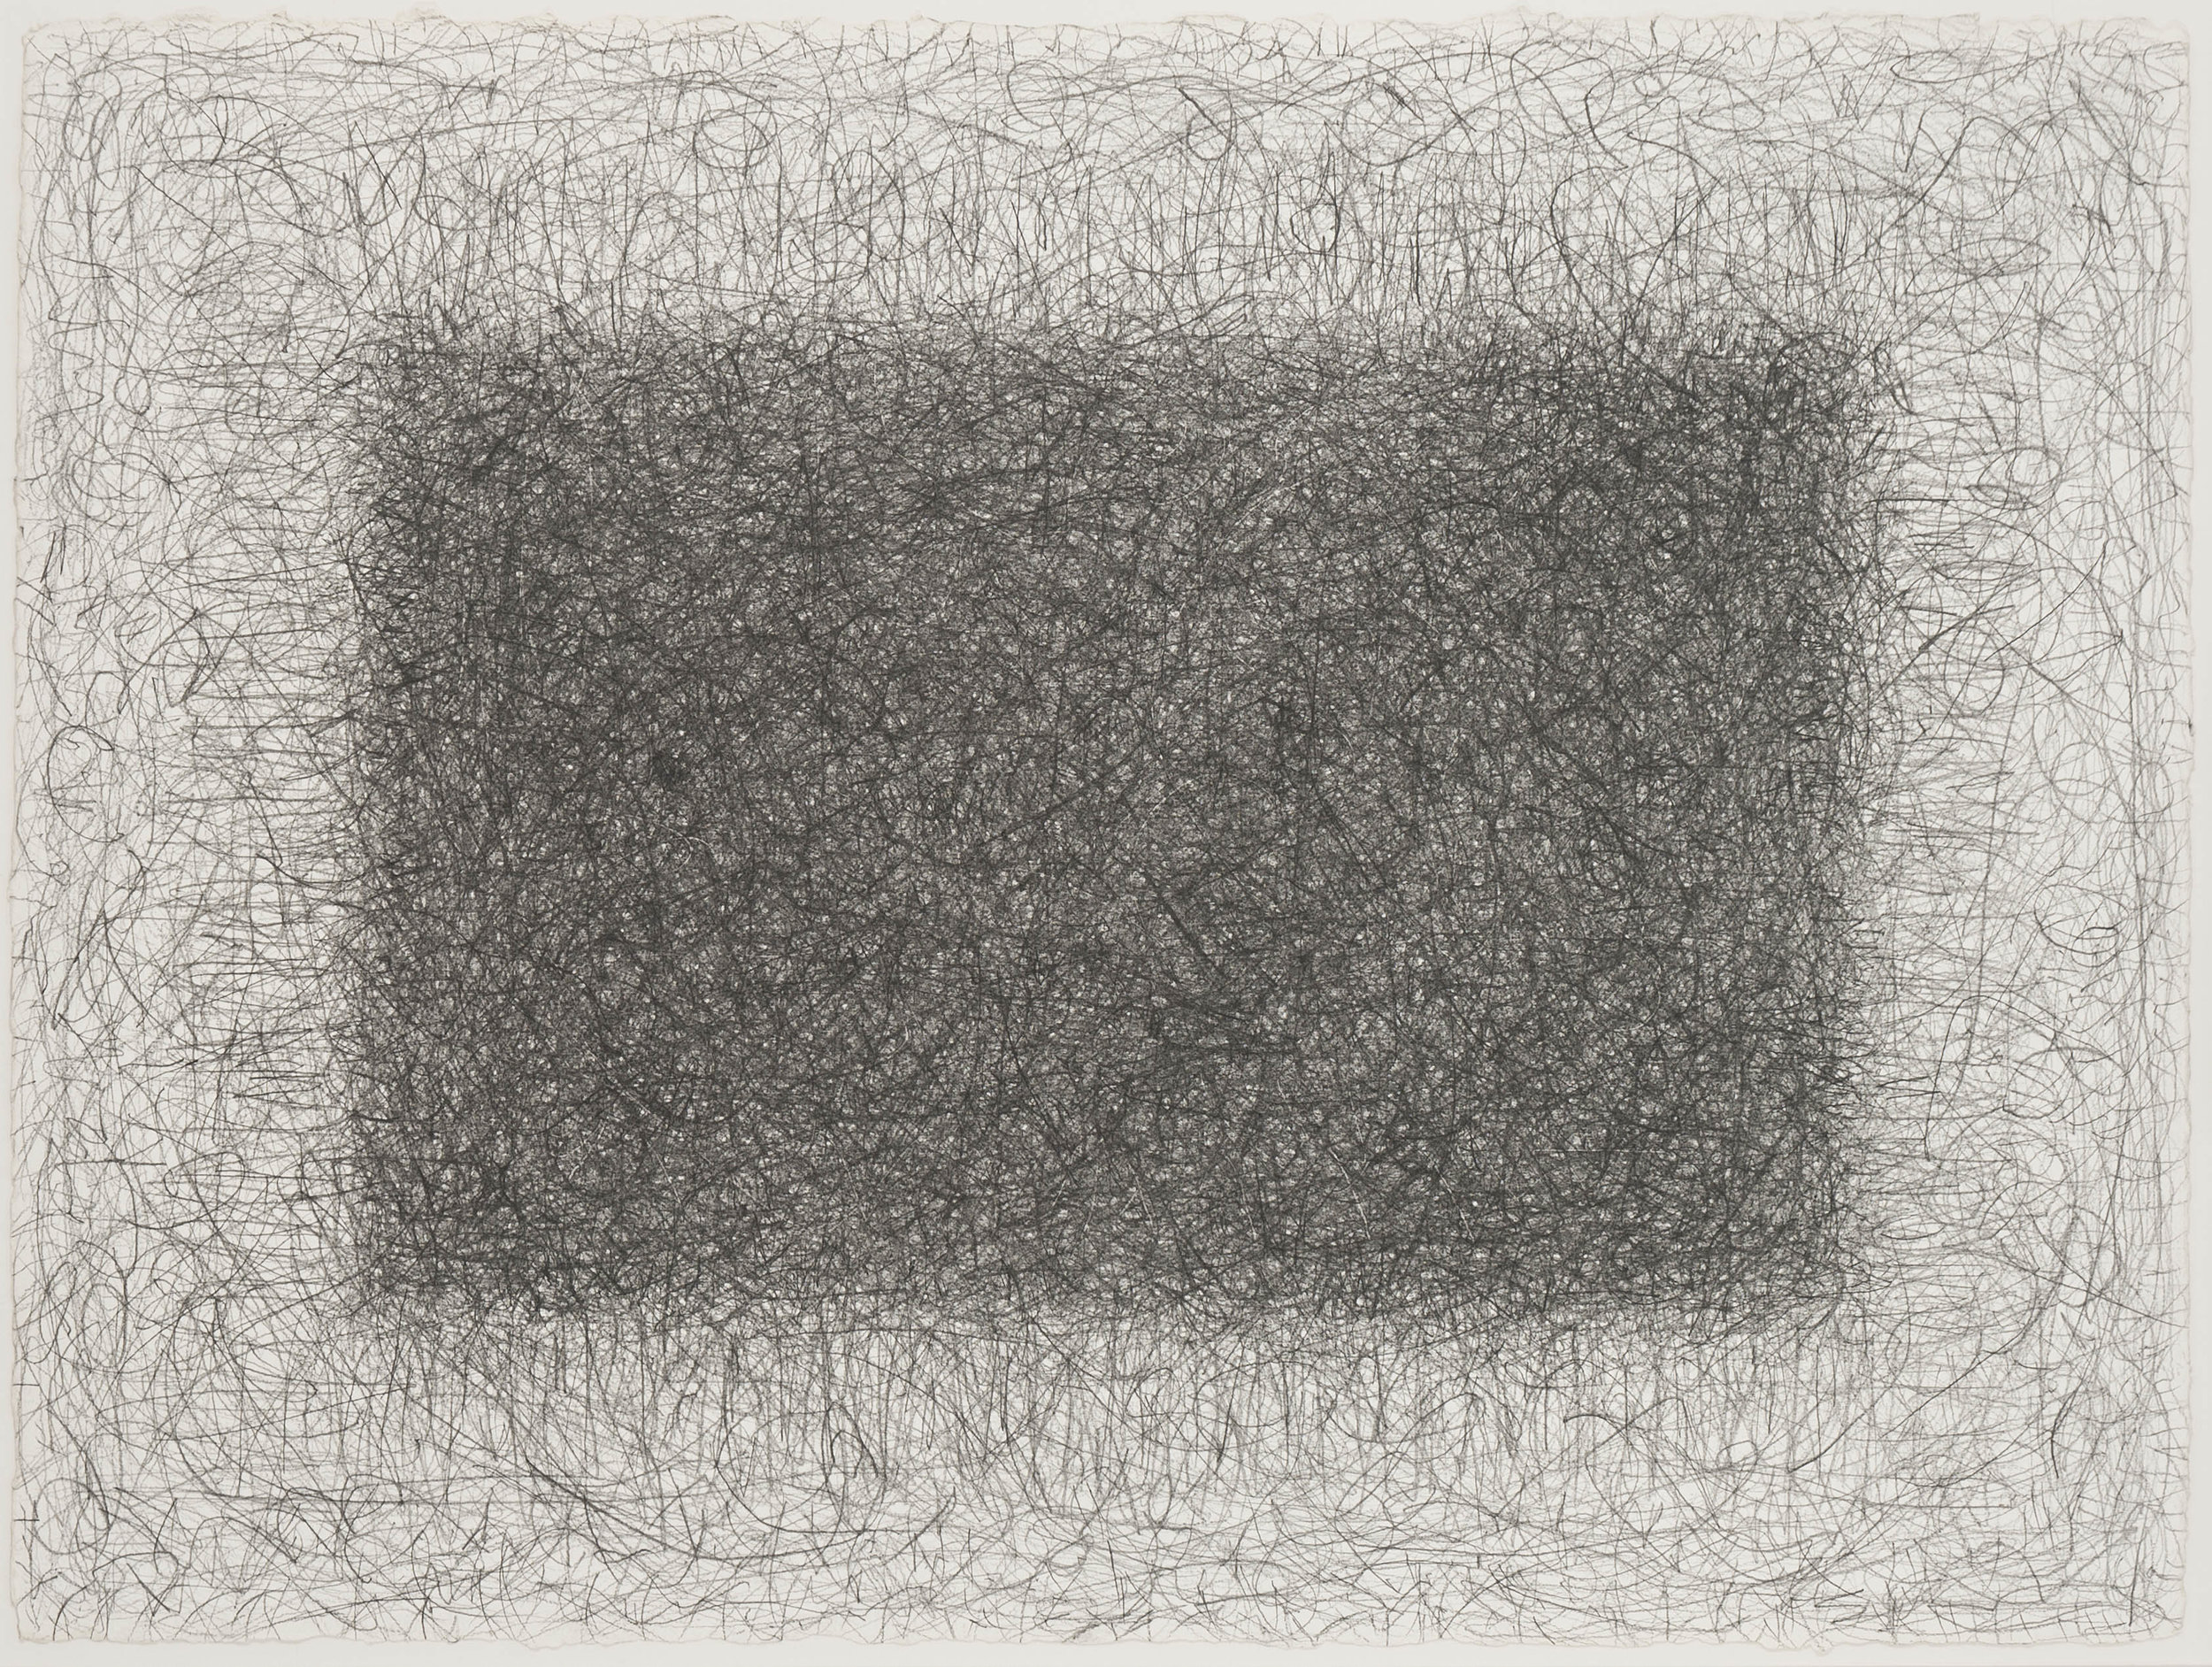 Richard Pousette-Dart ,  Untitled 1977 , graphite on heavy Arches paper, 22 1/2 x 30 3/8 inches